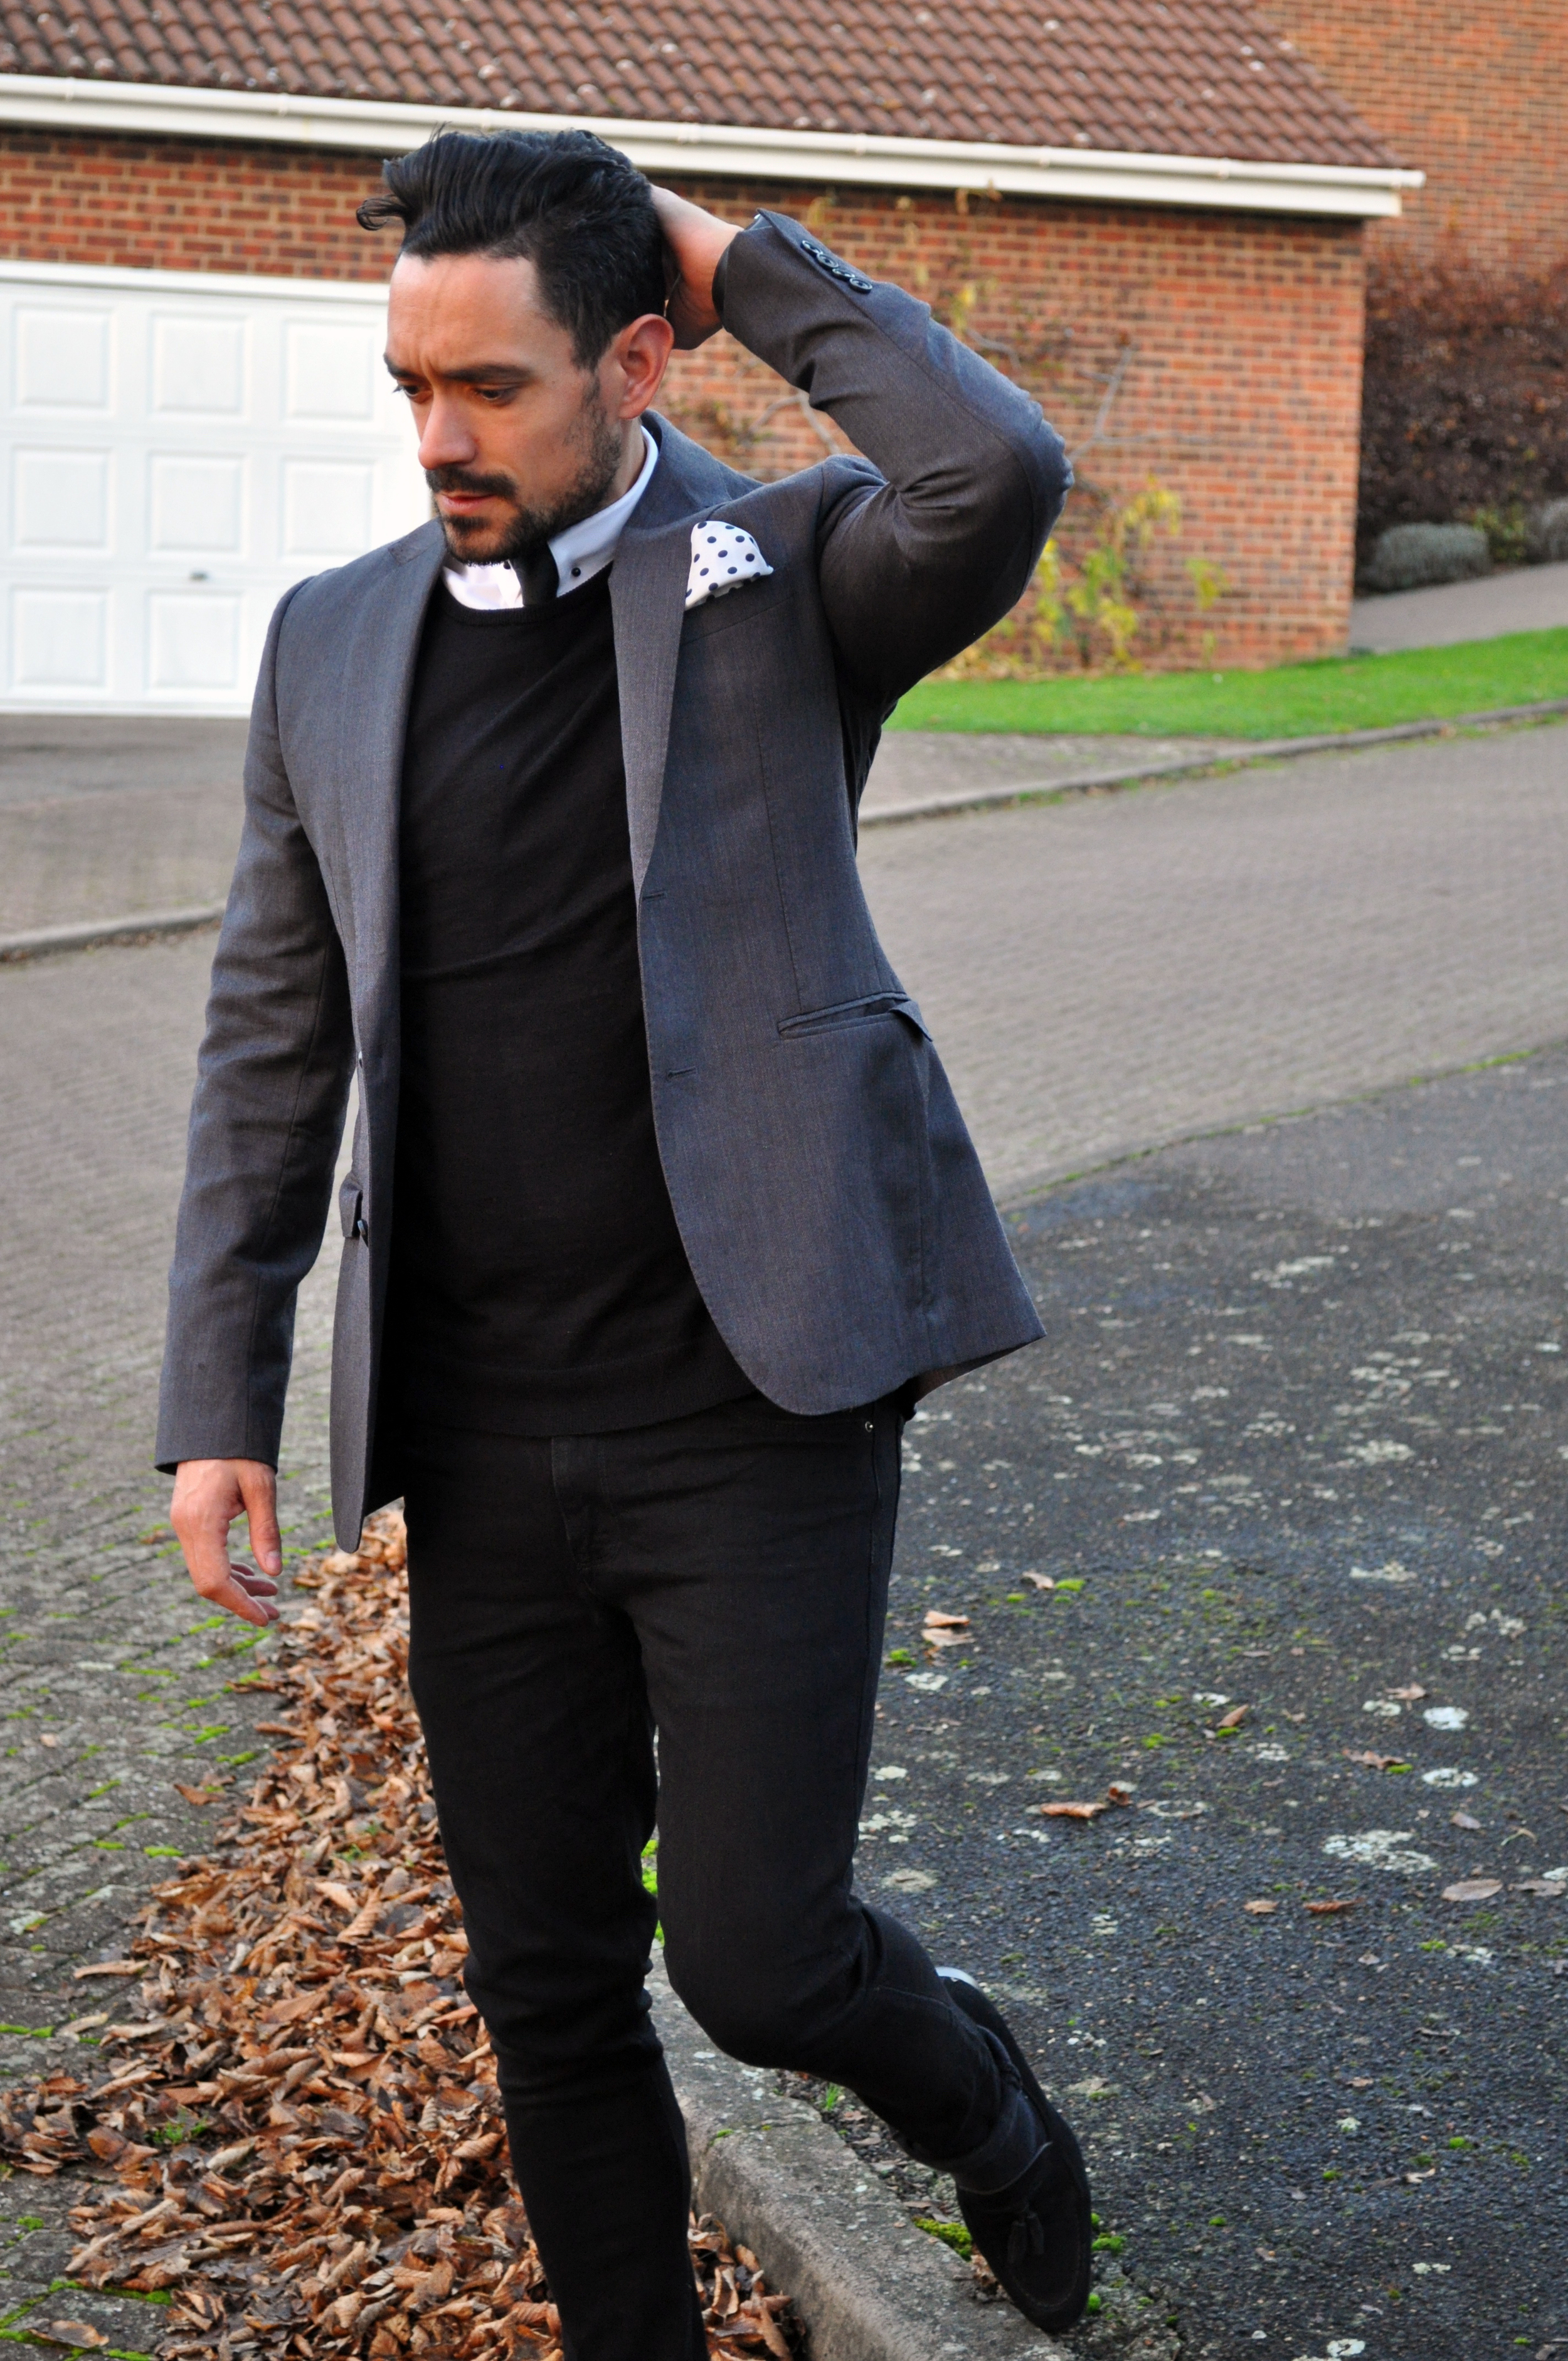 Moving from Casual to Formal in the blink of an eye, added a   semi skinny black tie  ,   polka dot pocket square   and grey blazer..oh and trainers for shoes,   black (Dune)   of course.